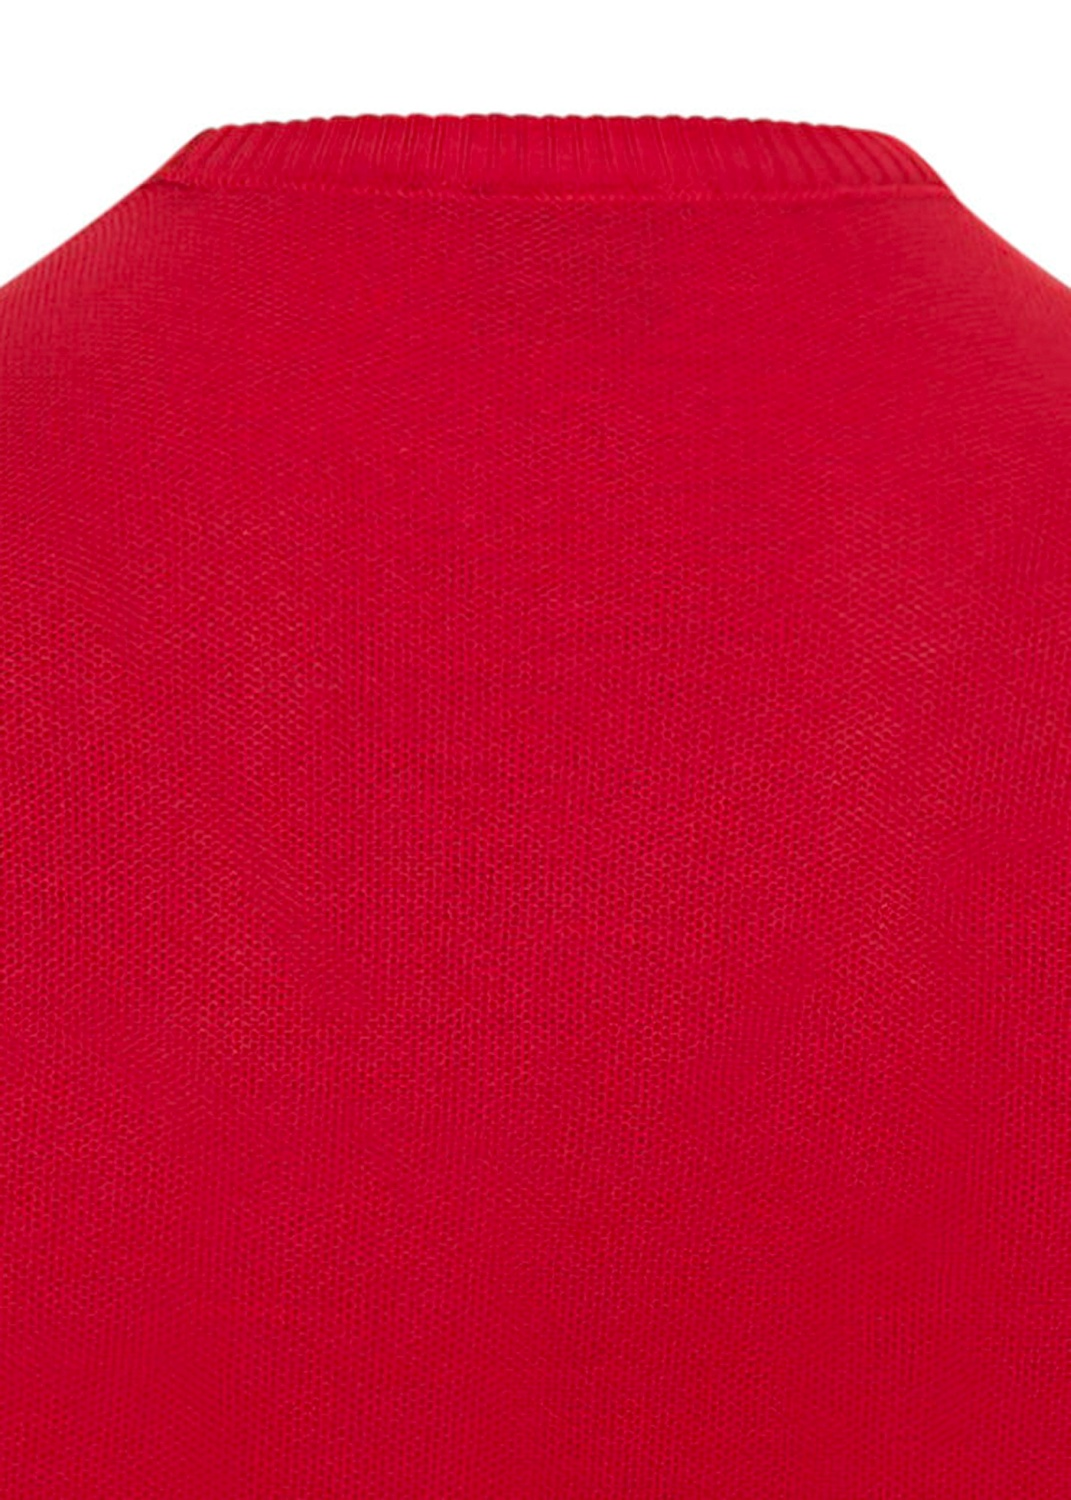 MEN'S KNITTED ROUNDNECK C.W. WOOL image number 3